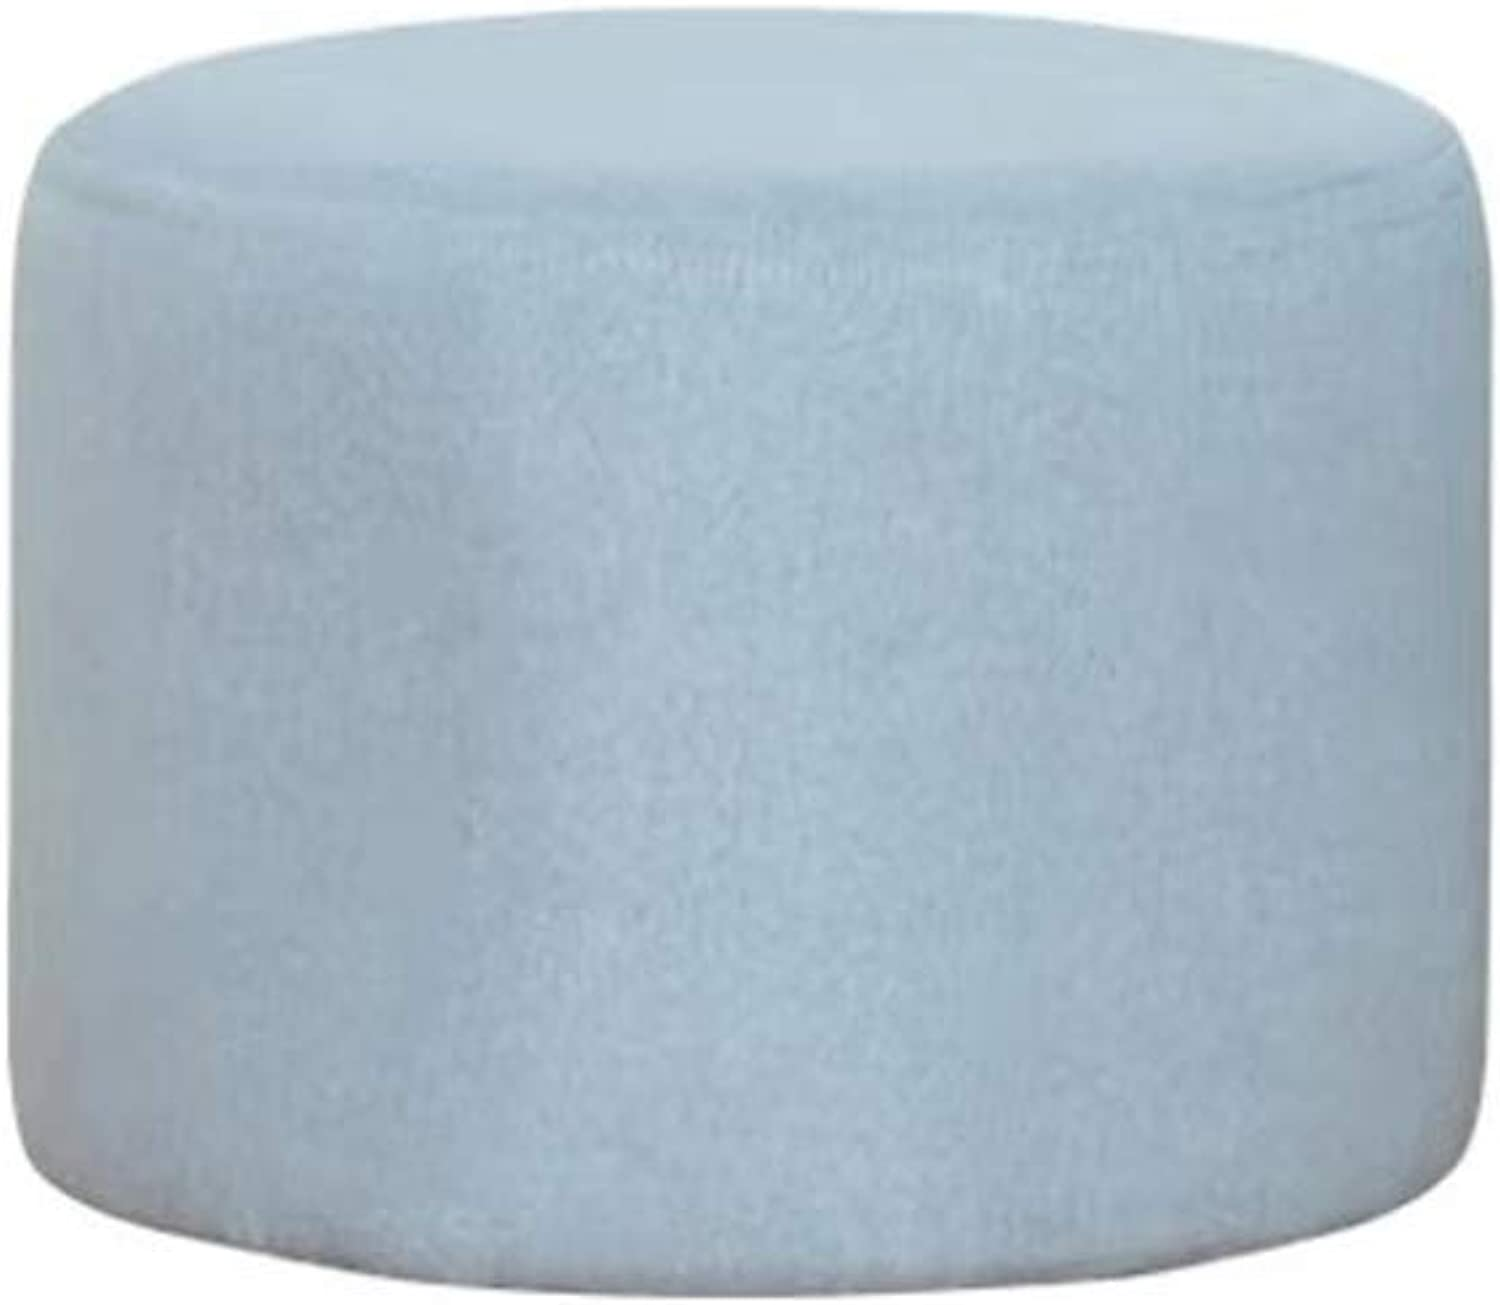 Storage Stool Footstool Round Pouffe Chair Concealed Pulley Upholstered Footchair Movable Stool Couch Home Footstool LEBAO (color   Light bluee)